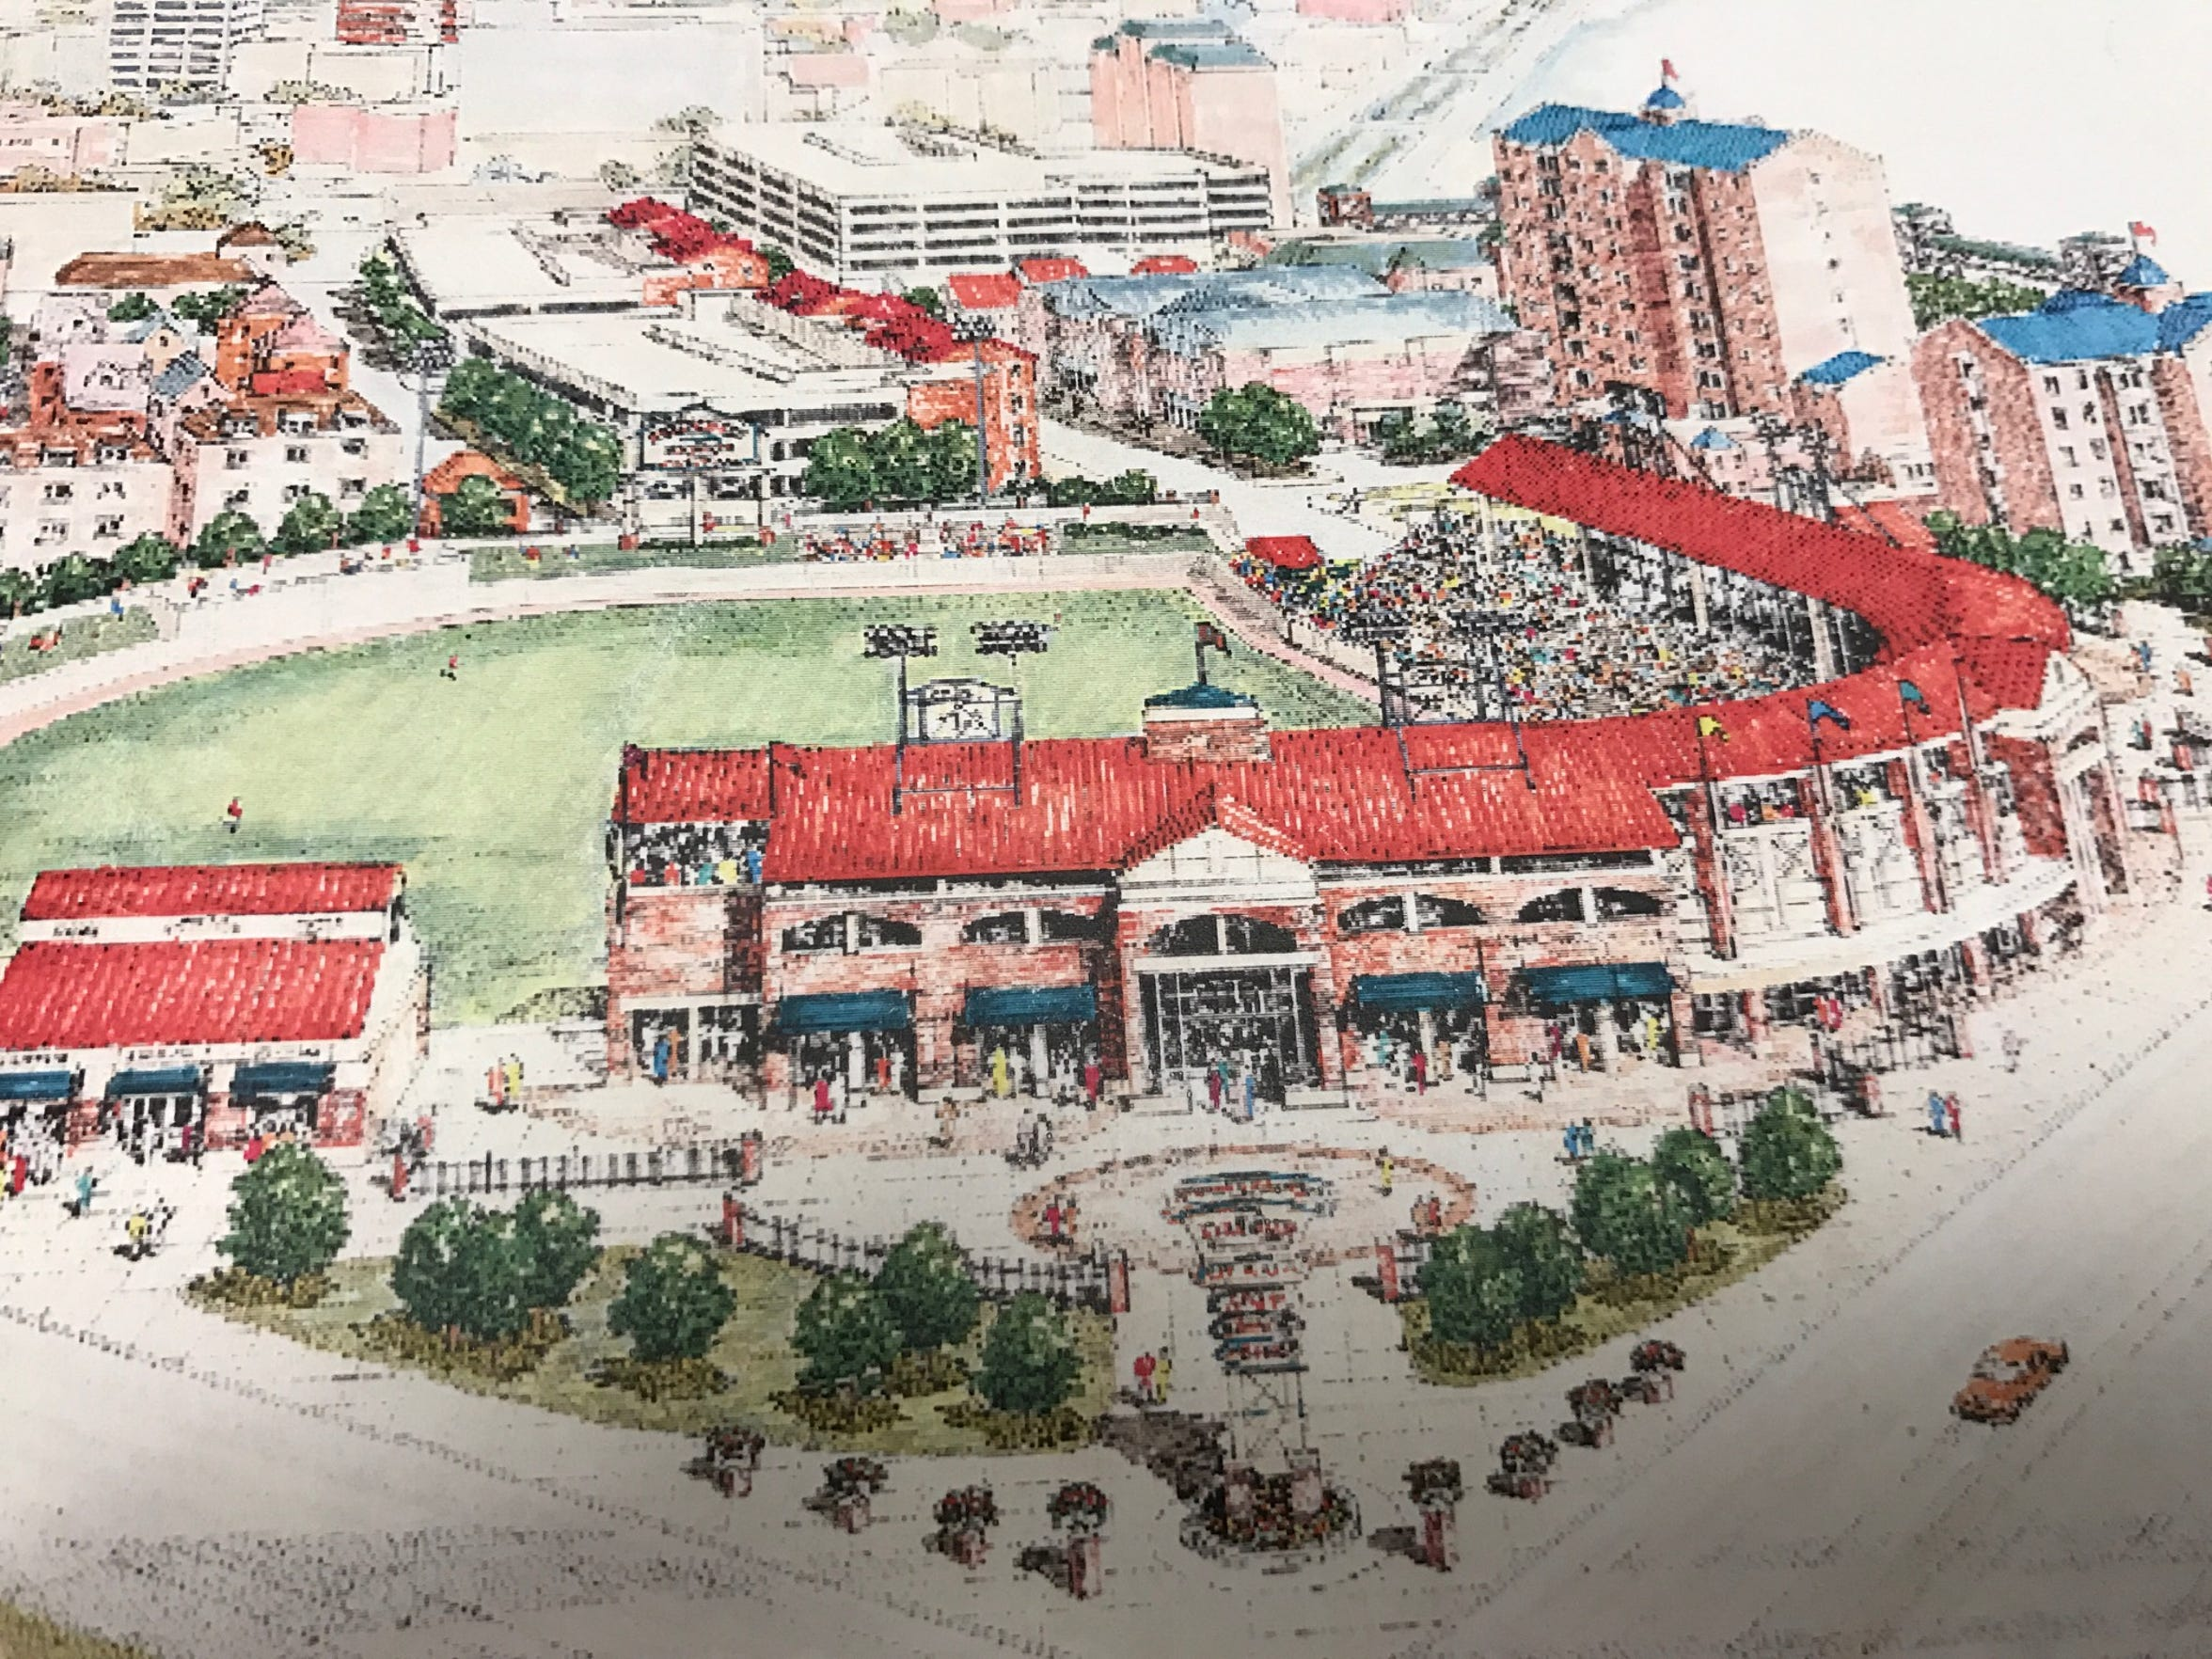 An artist's rendering of the proposed Downtown baseball